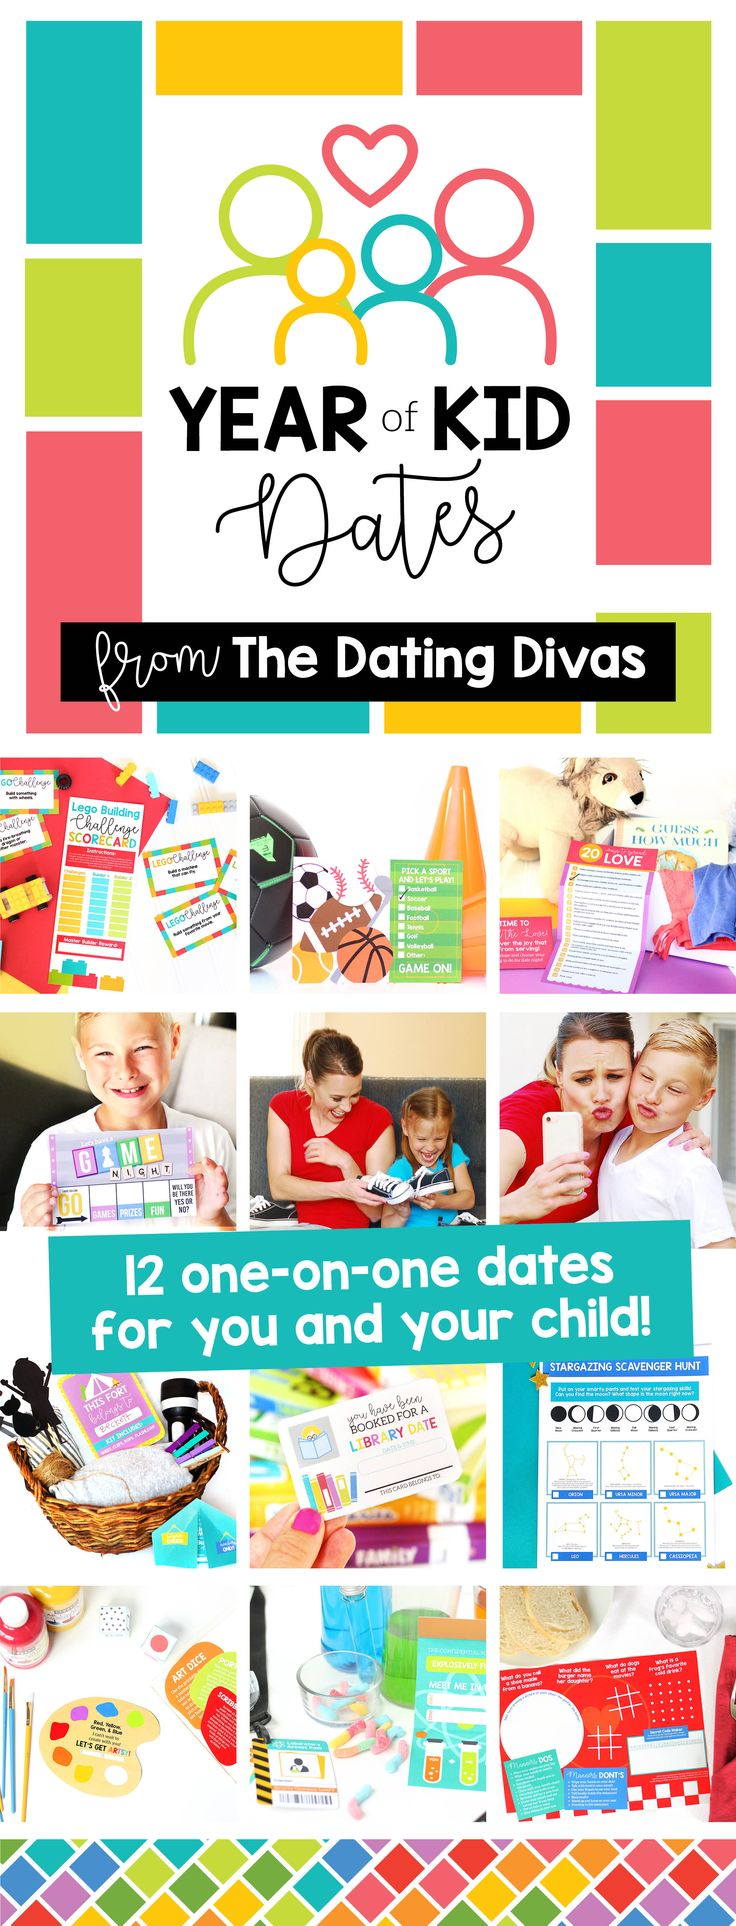 We know many of you have kiddos and we wanted to come up with an easy way to help you plan fun and original activities to do with your them, to create cherished memories and meaningful conversation!e created 12 mini dates, specifically for kids and parents to do together! Plus when they realize what awesome one-on-one time you have in store with them, they'll feel SPOILED and LOVED. Check out this awesome kit here! #YearofKidsDates #Family